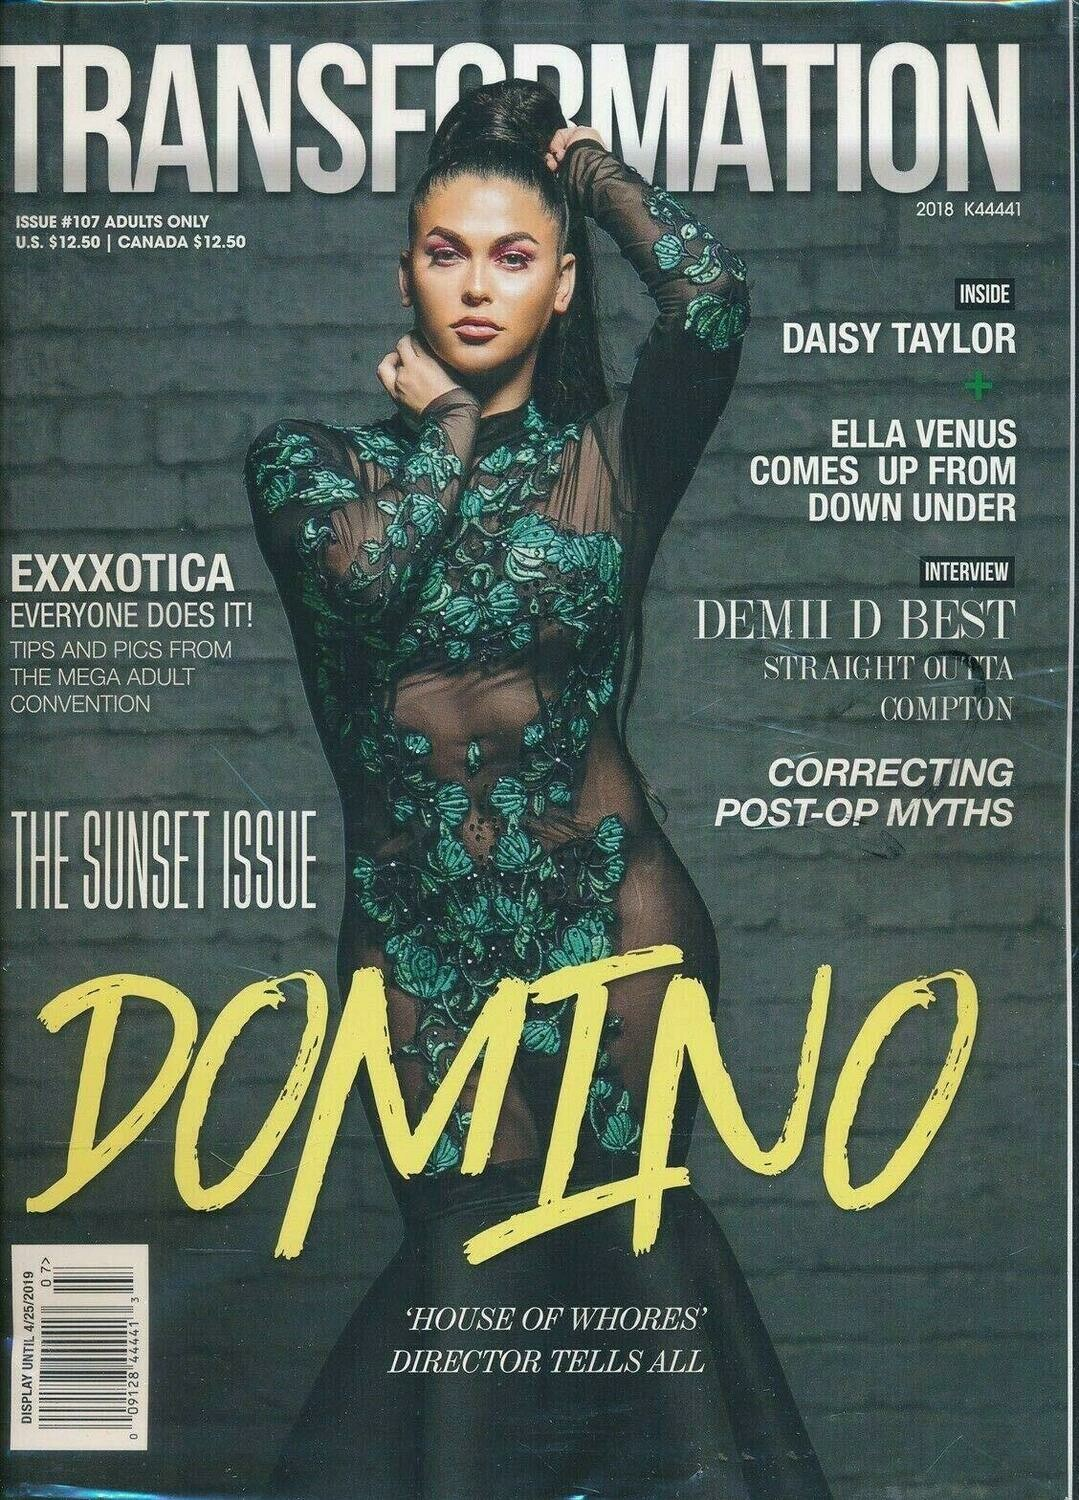 TRANSFORMATION Adult Magazine Issue Number 107 2018 TVTS DOMINO Cover The-Sunset Issue